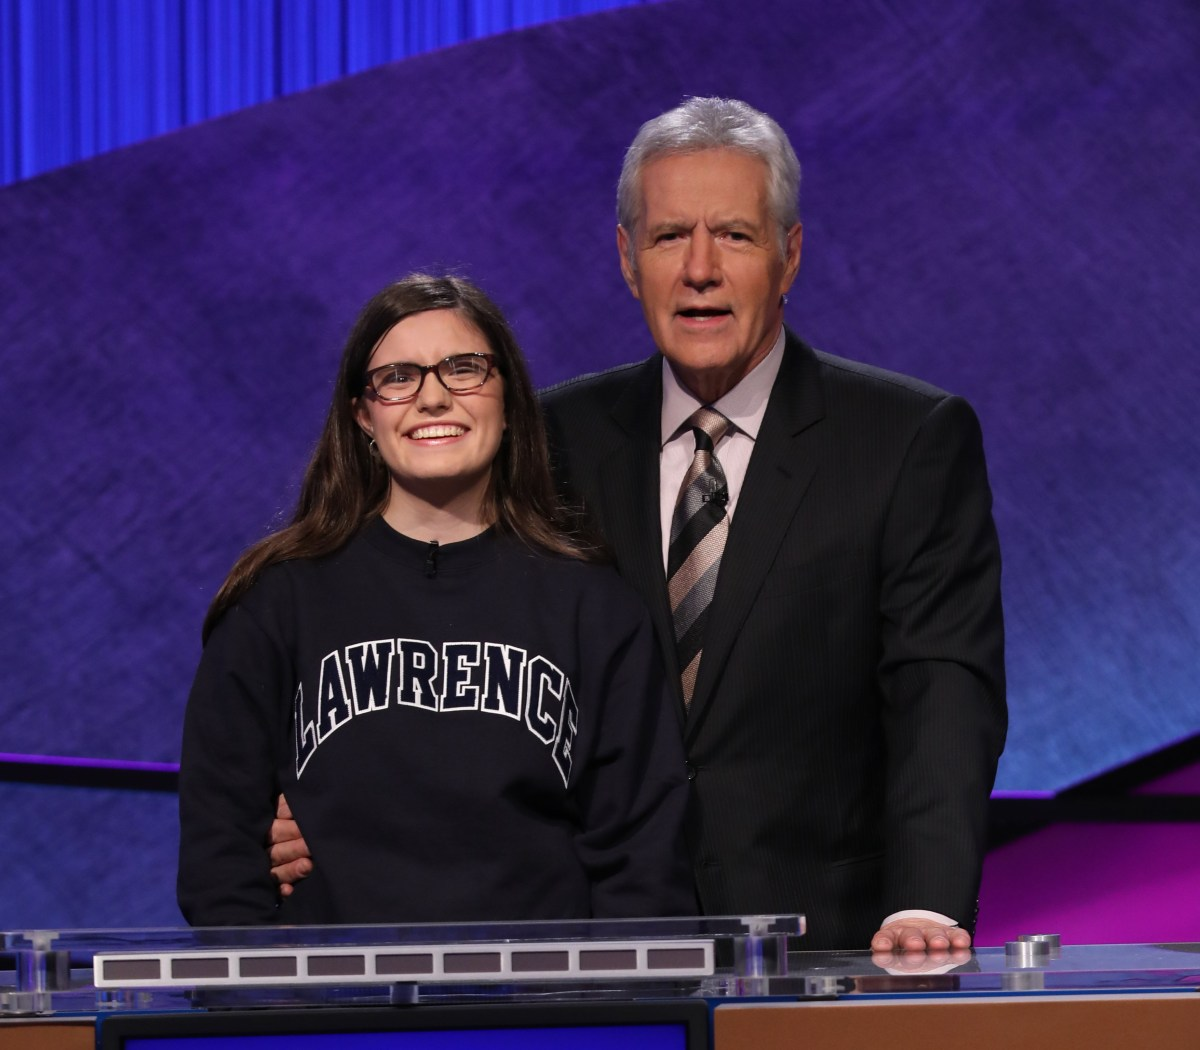 Allison Holley, formerly of Racine, poses with the host of JEOPARDY, Alex Trebeck.